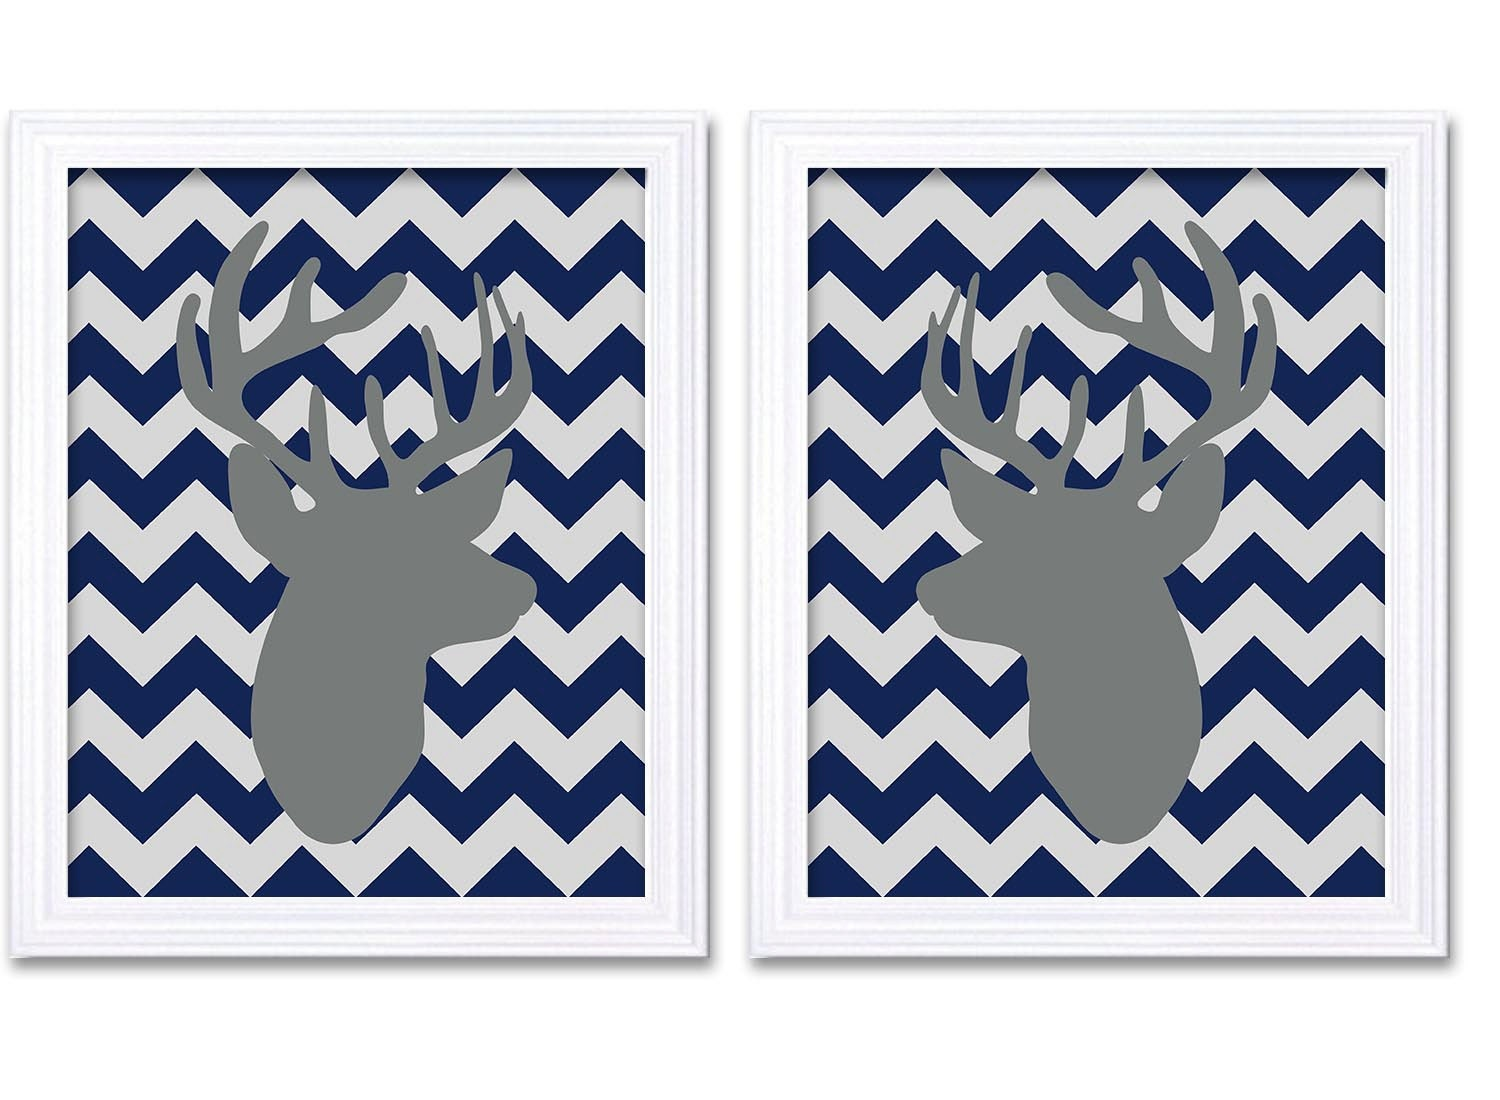 Deer Nursery Art Deer Head Prints Set of 2 Navy Blue Grey Chevron Baby Wall Decor Forest